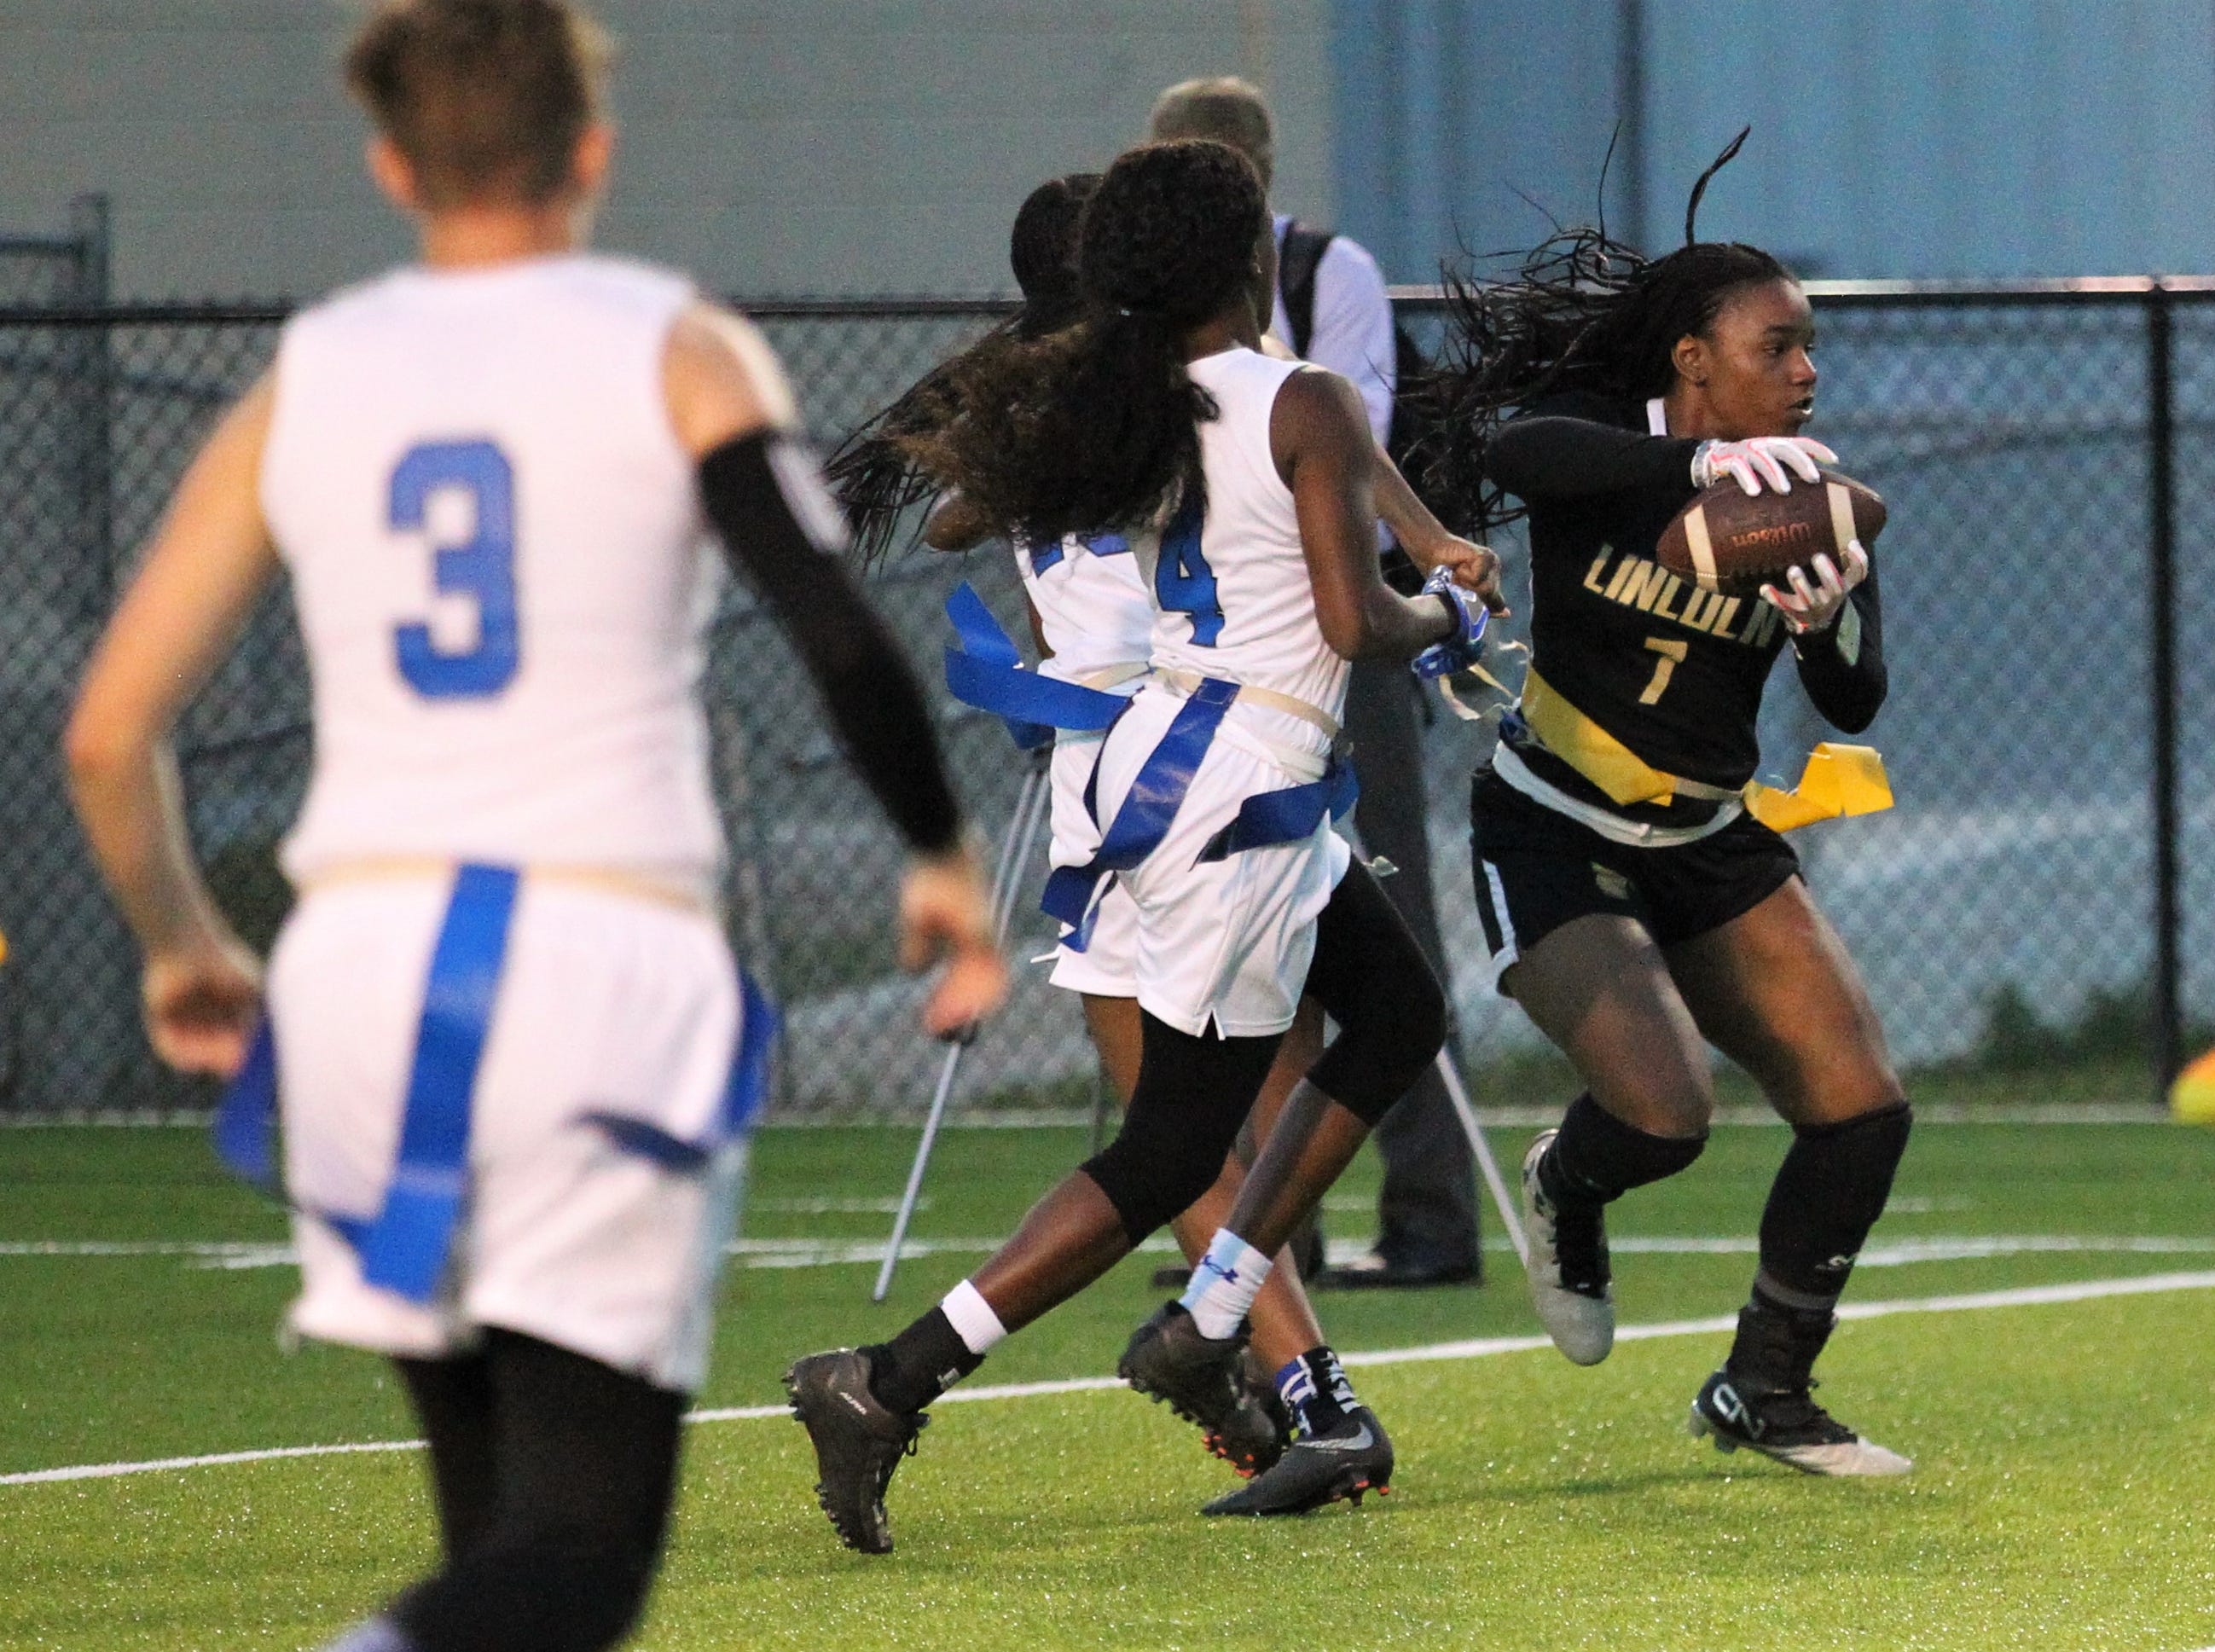 Lincoln sophomore Erin Turral catches a pass and turns upfield near the goal line as Godby's flag football team beat Lincoln 25-6 at Gene Cox Stadium on March 14, 2019.